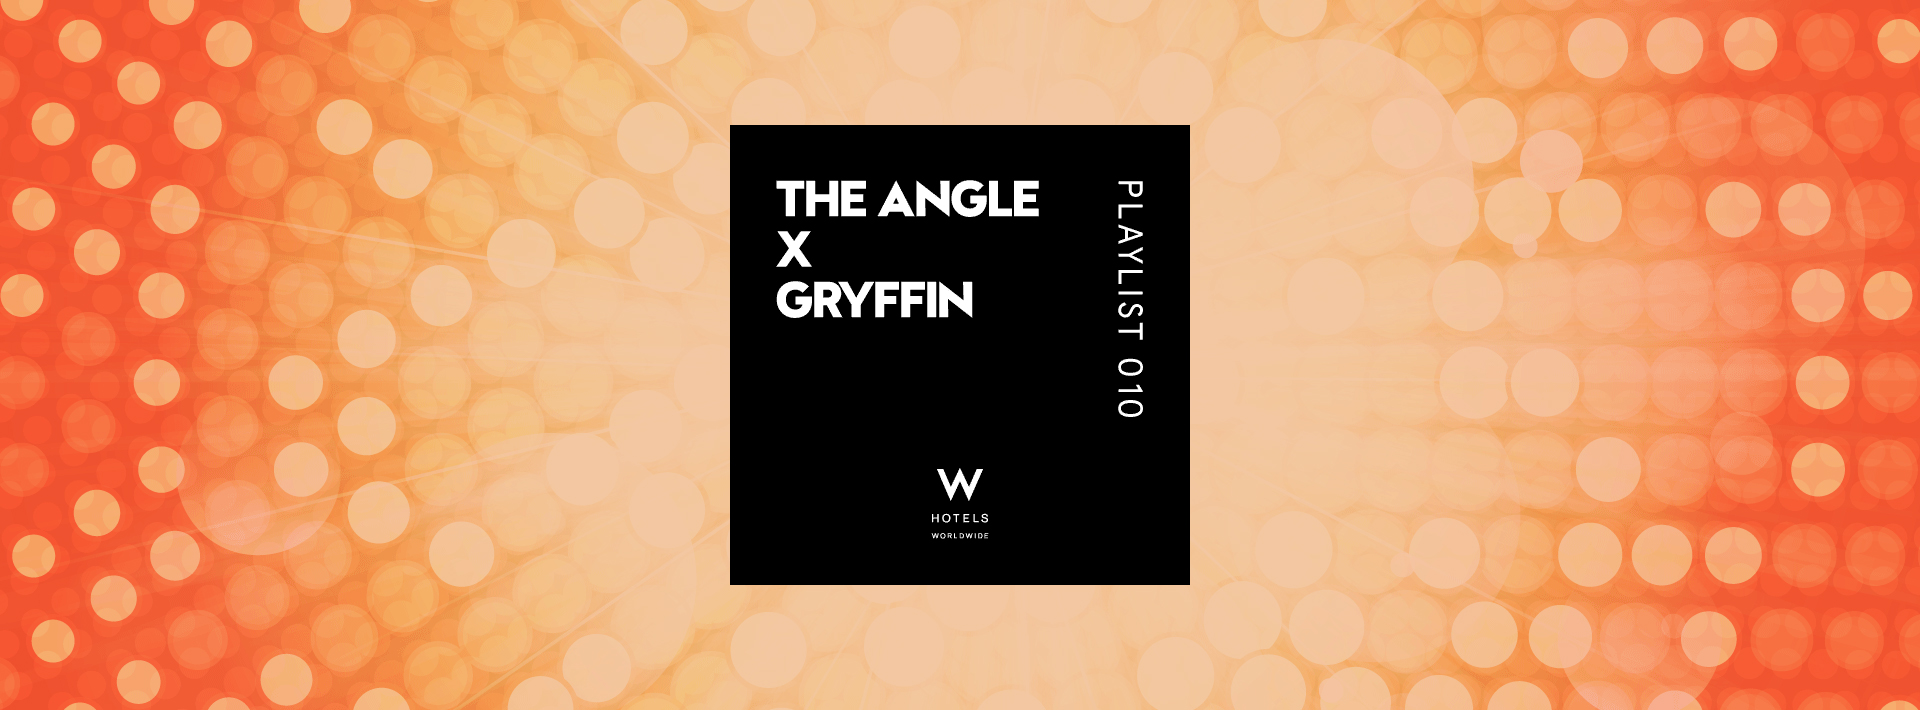 Playlist-Header-W-Hotels-The-Angle-Playlist